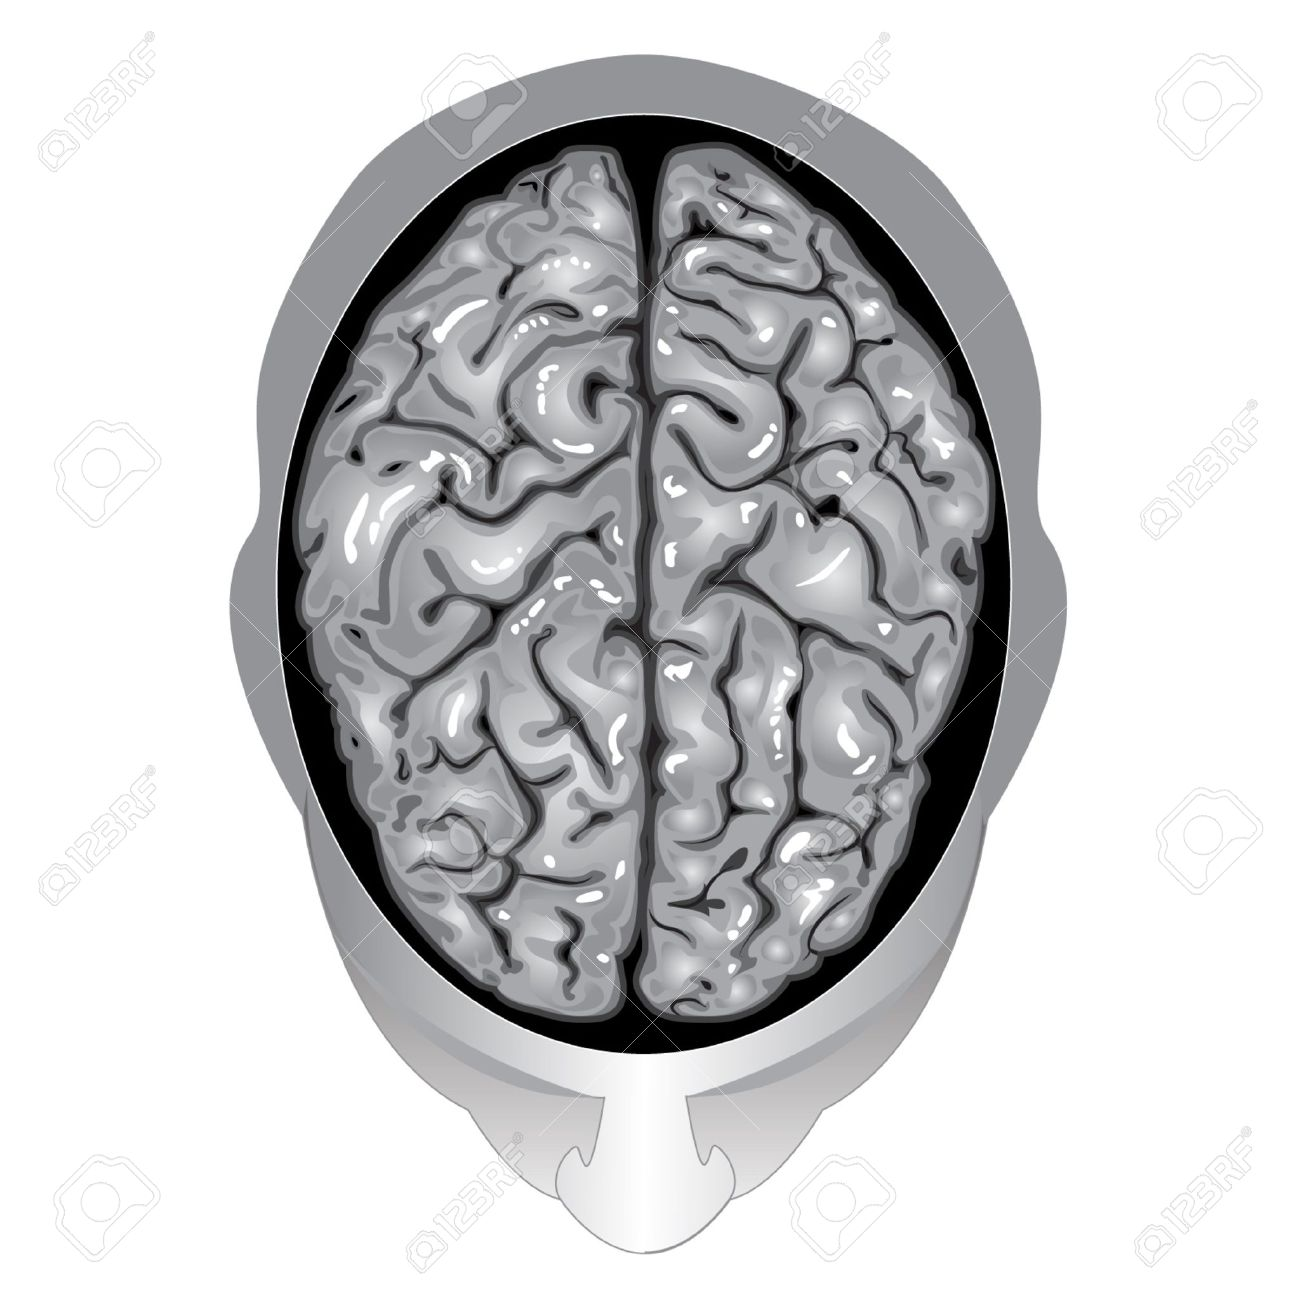 Human brain top view royalty free cliparts vectors and stock human brain top view stock vector 9806987 ccuart Choice Image